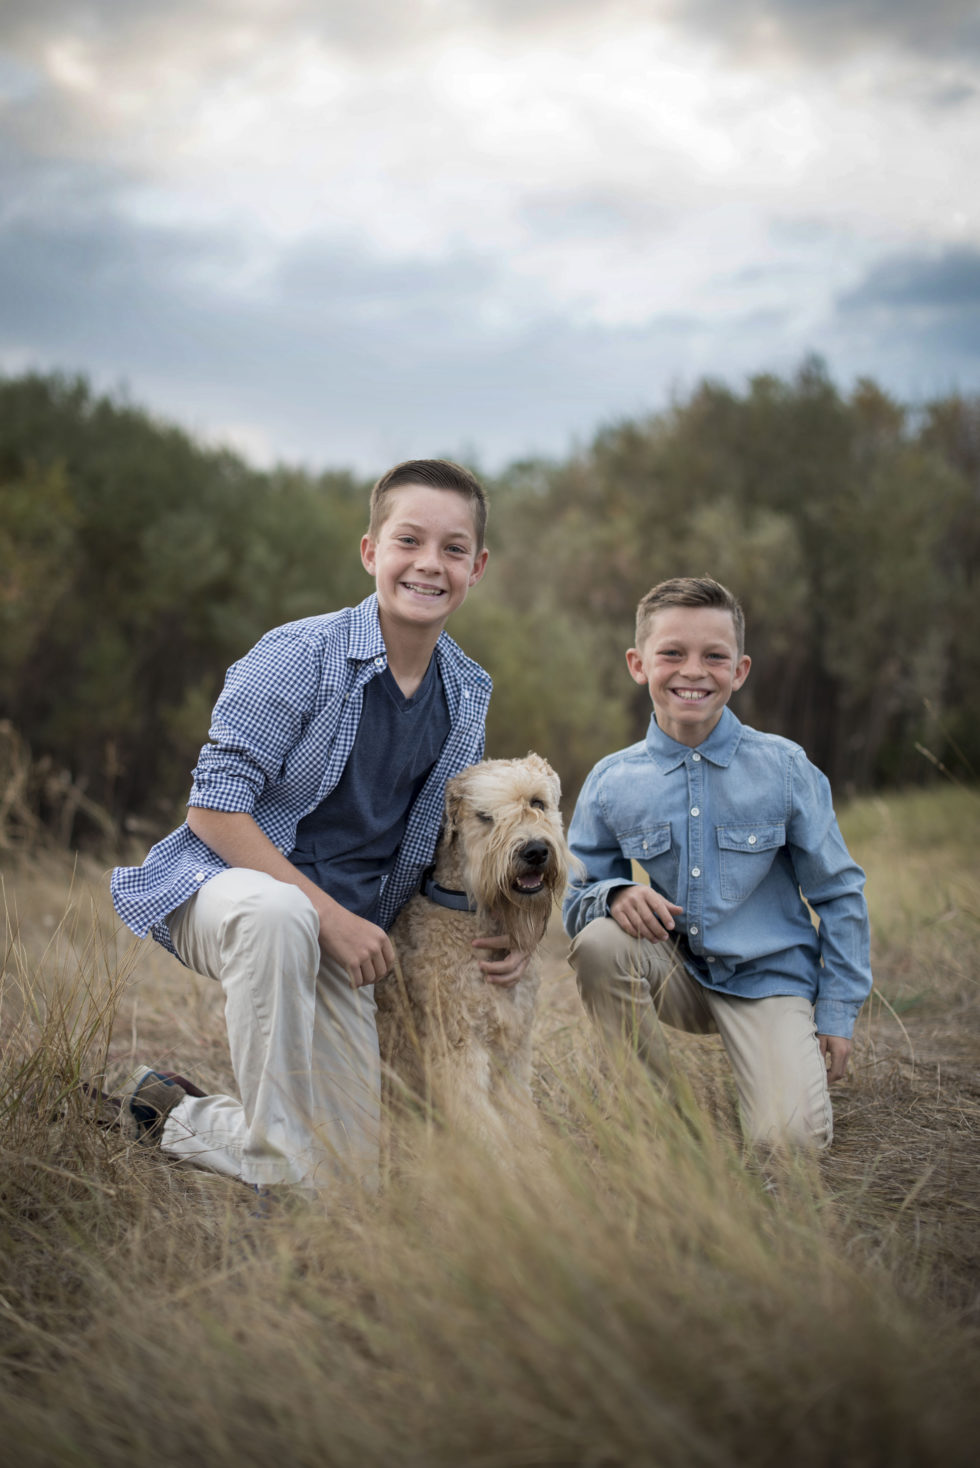 Broomfield Colorado family portrait photographer